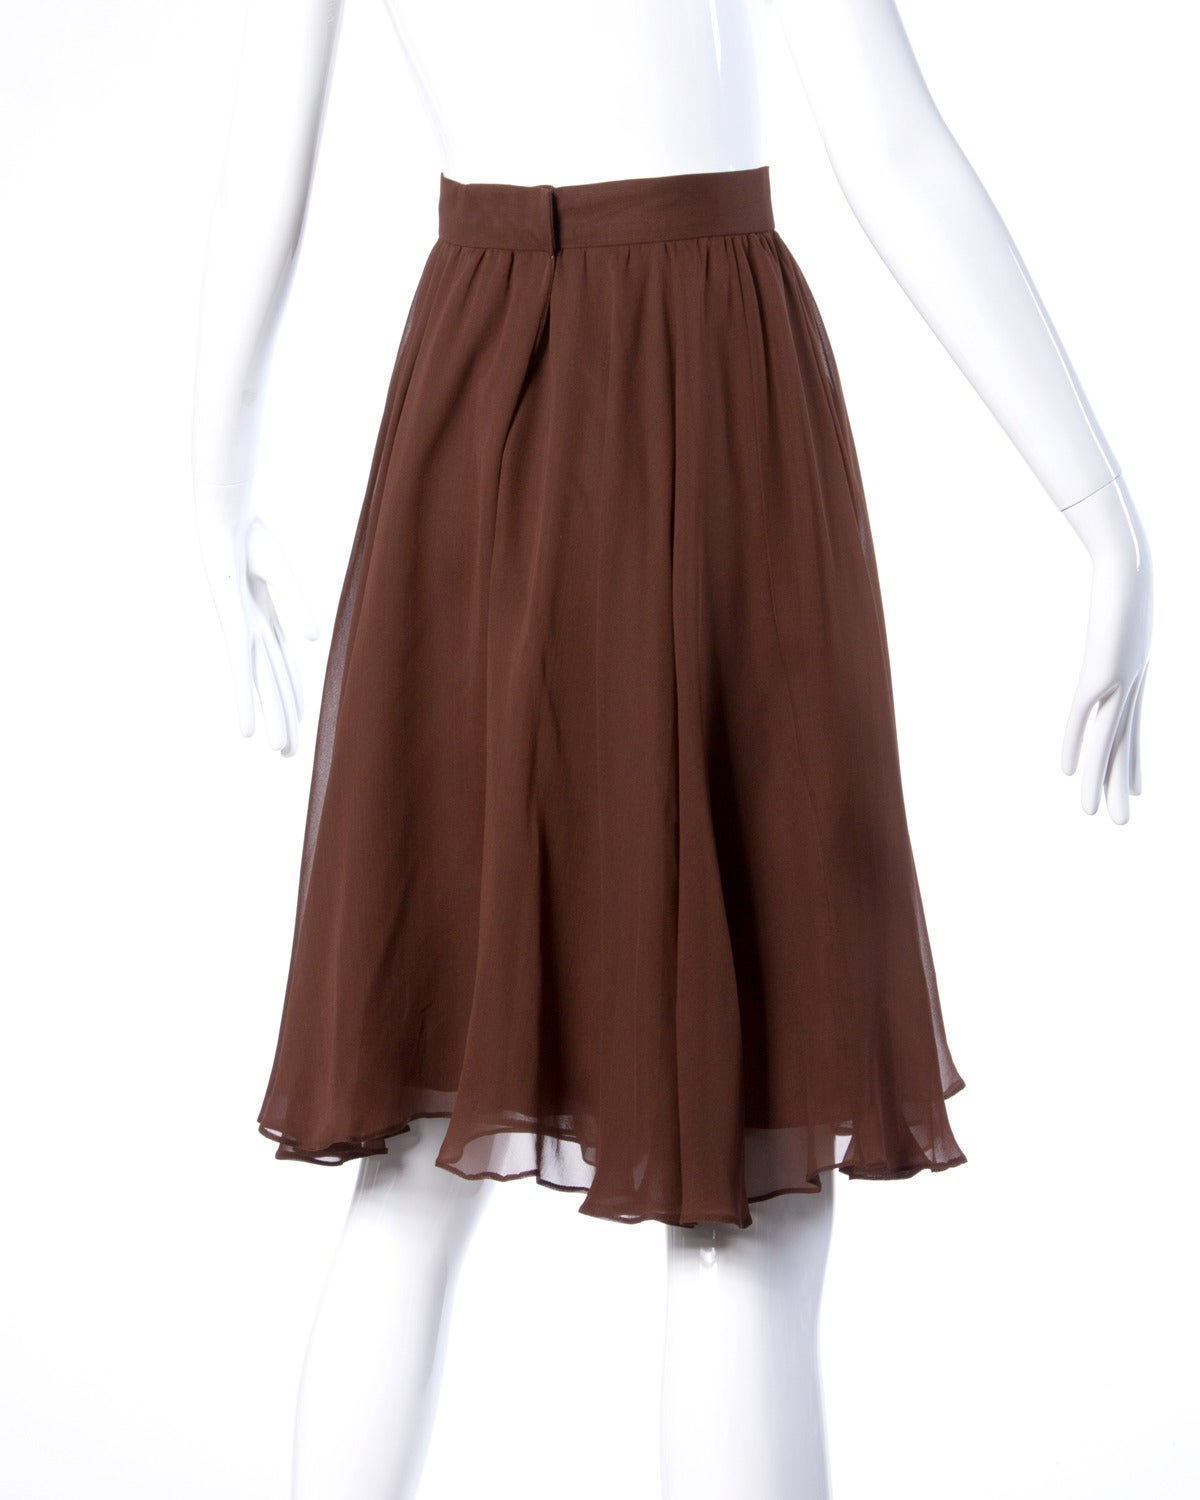 Carolina Herrera Vintage Brown Silk Chiffon Wide Leg Shorts/ Skirt 4